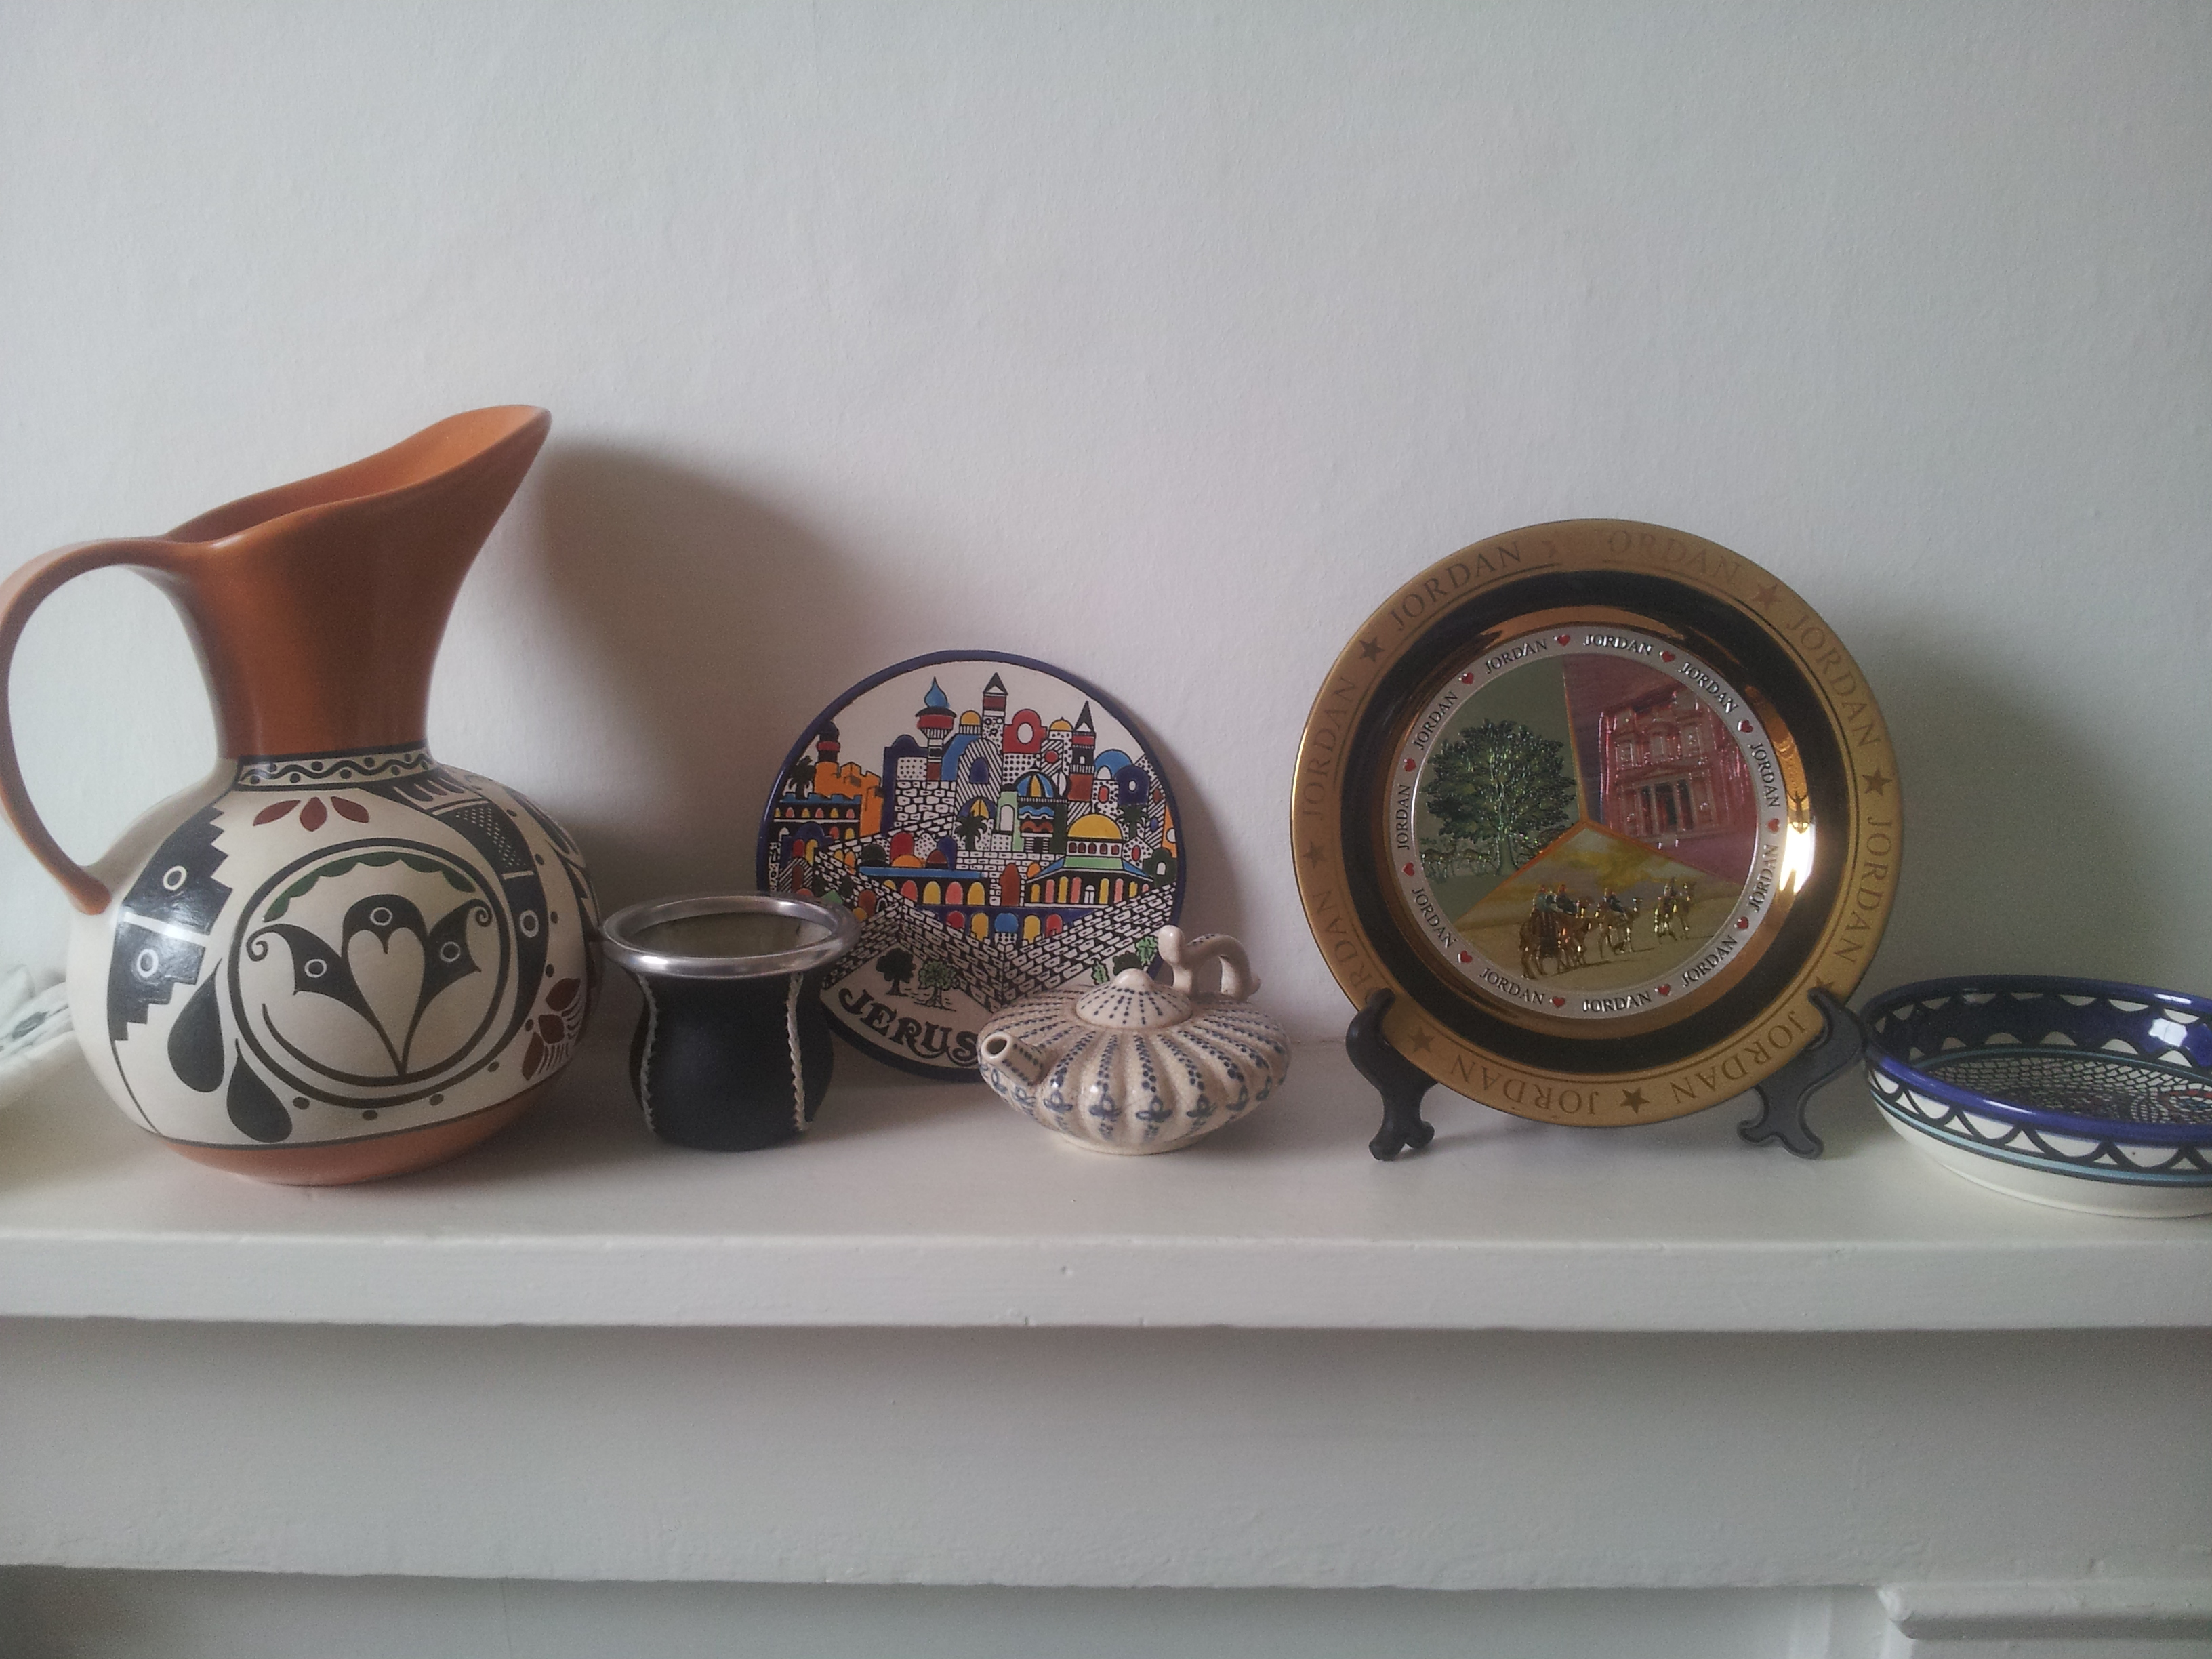 On the mantelpiece are gifts from World Voice participants including Argentine pottery and a mate cup, a plate from Jerusalem, Senegal lamp, a plate from Jordan and a Palestinian olive bowl. In the far left corner is an exquisite tile made from the same marble as the Taj Mahal.